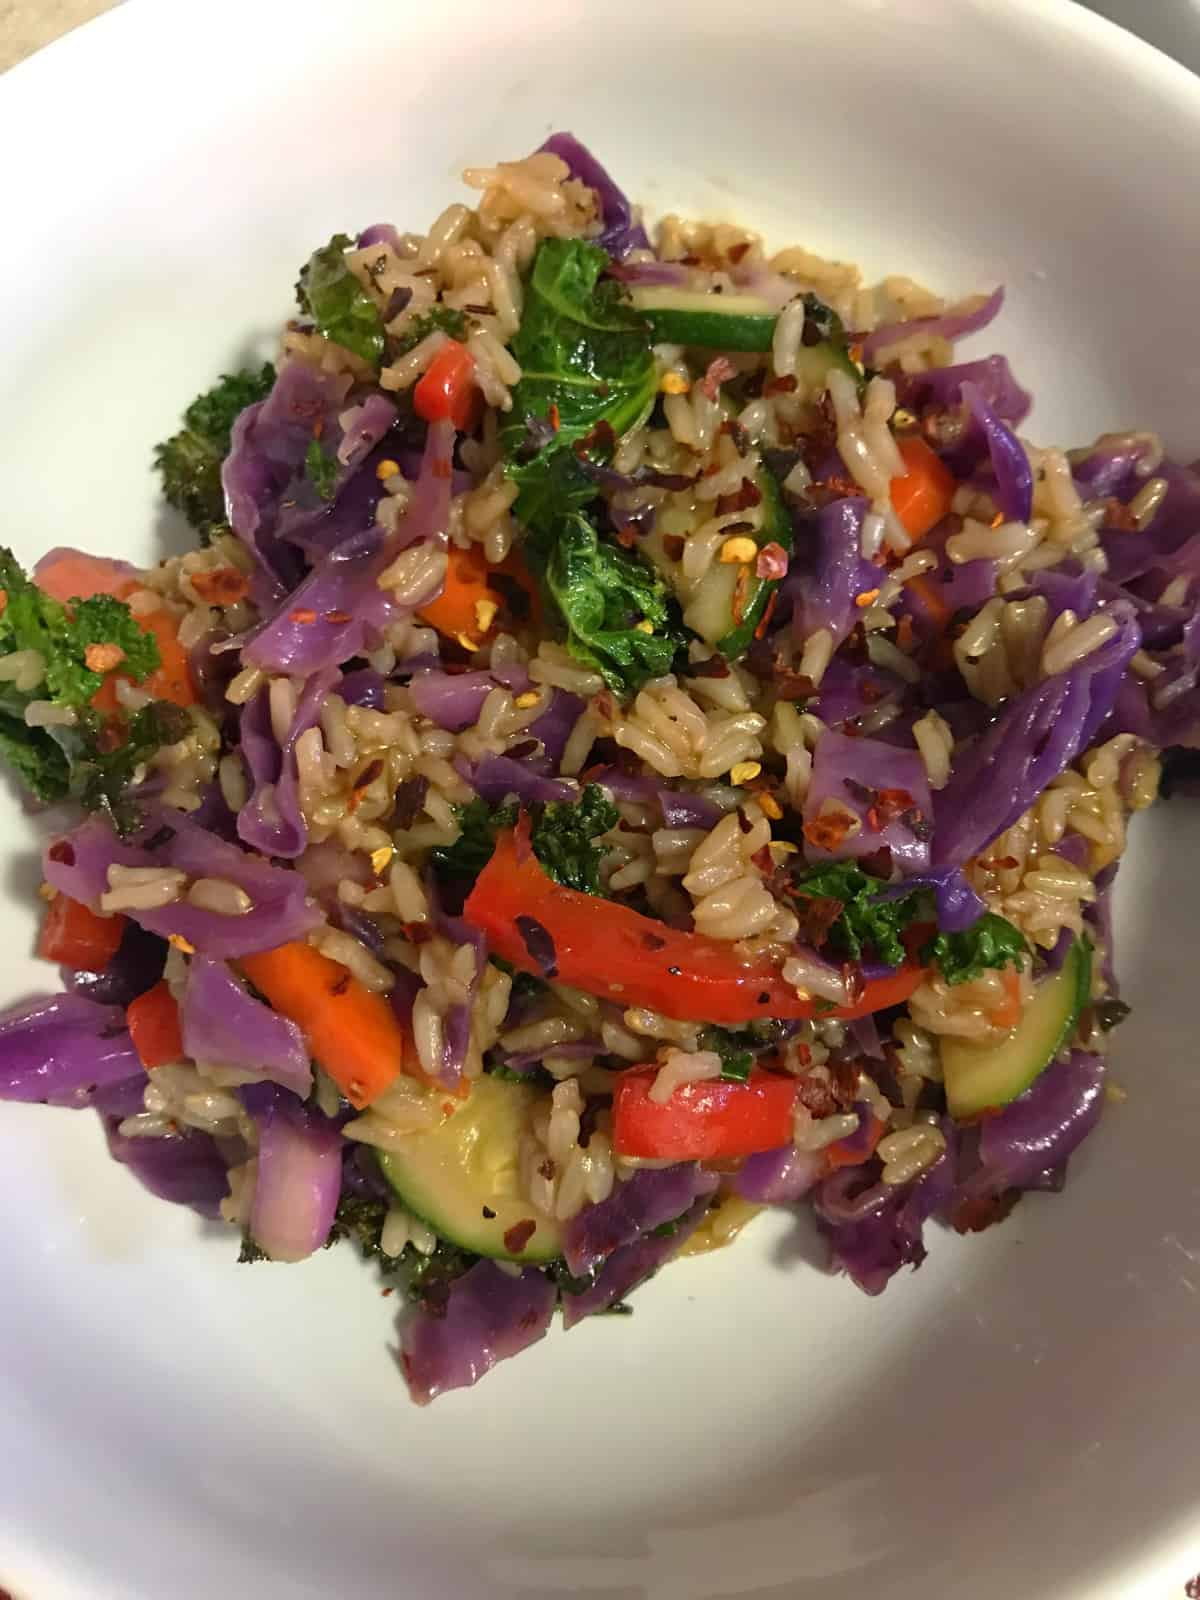 https://www.orchidsandsweettea.com/veggie-brown-rice-stir-fry/